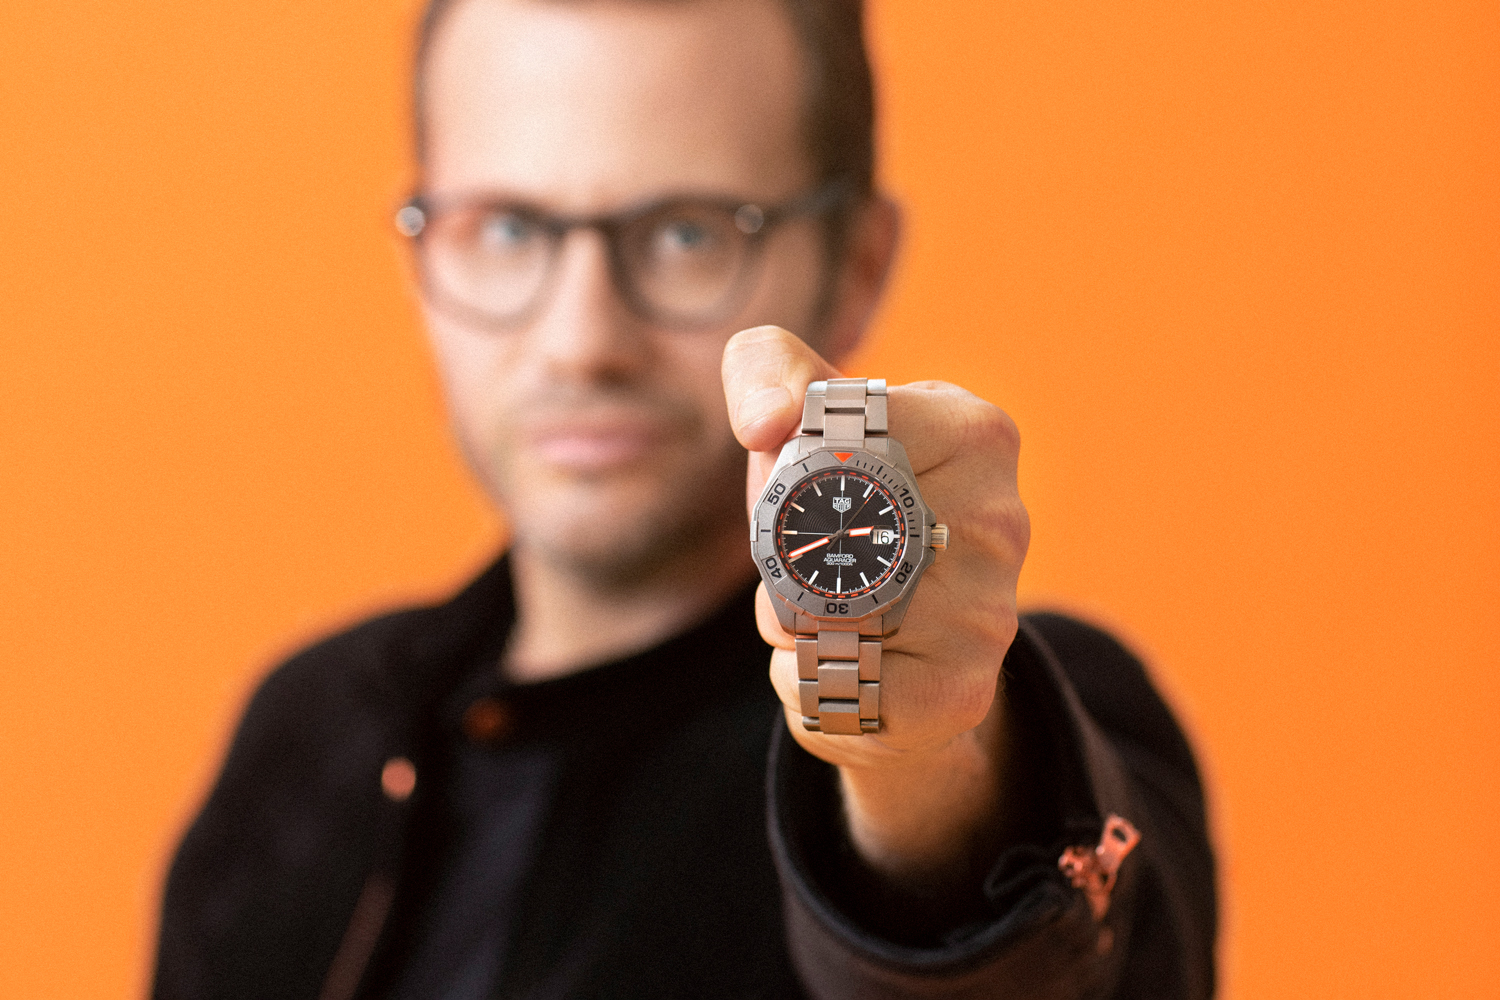 George Bamford with the TAG Heuer X Bamford Watch Department Limited Edition Aquaracer